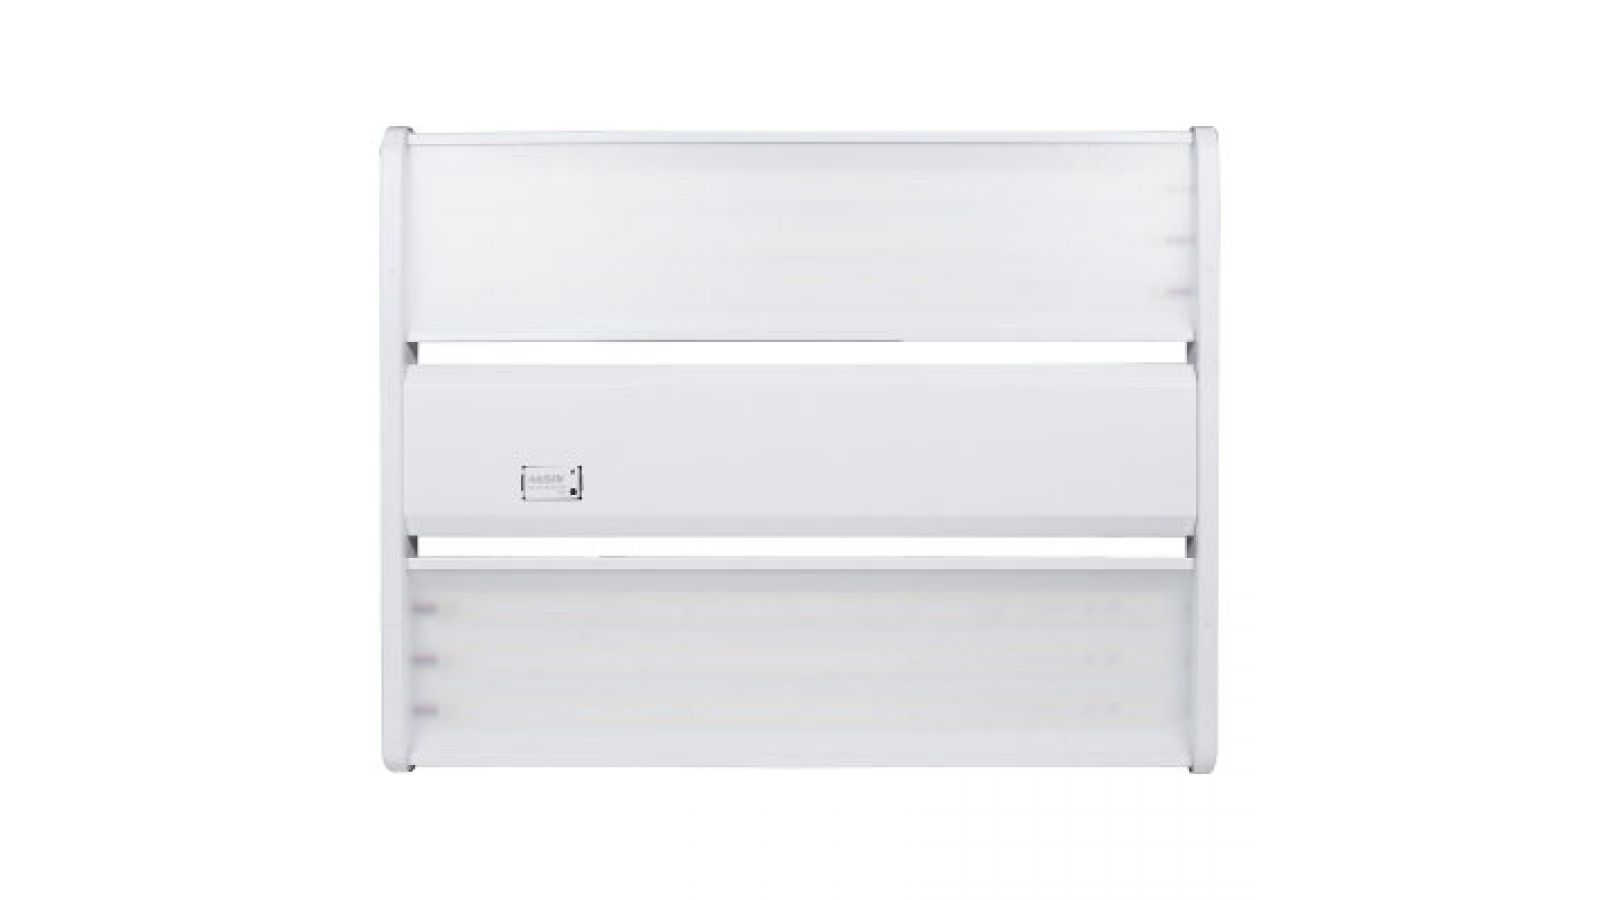 SYLVANIA ValueLED Linear High Bay